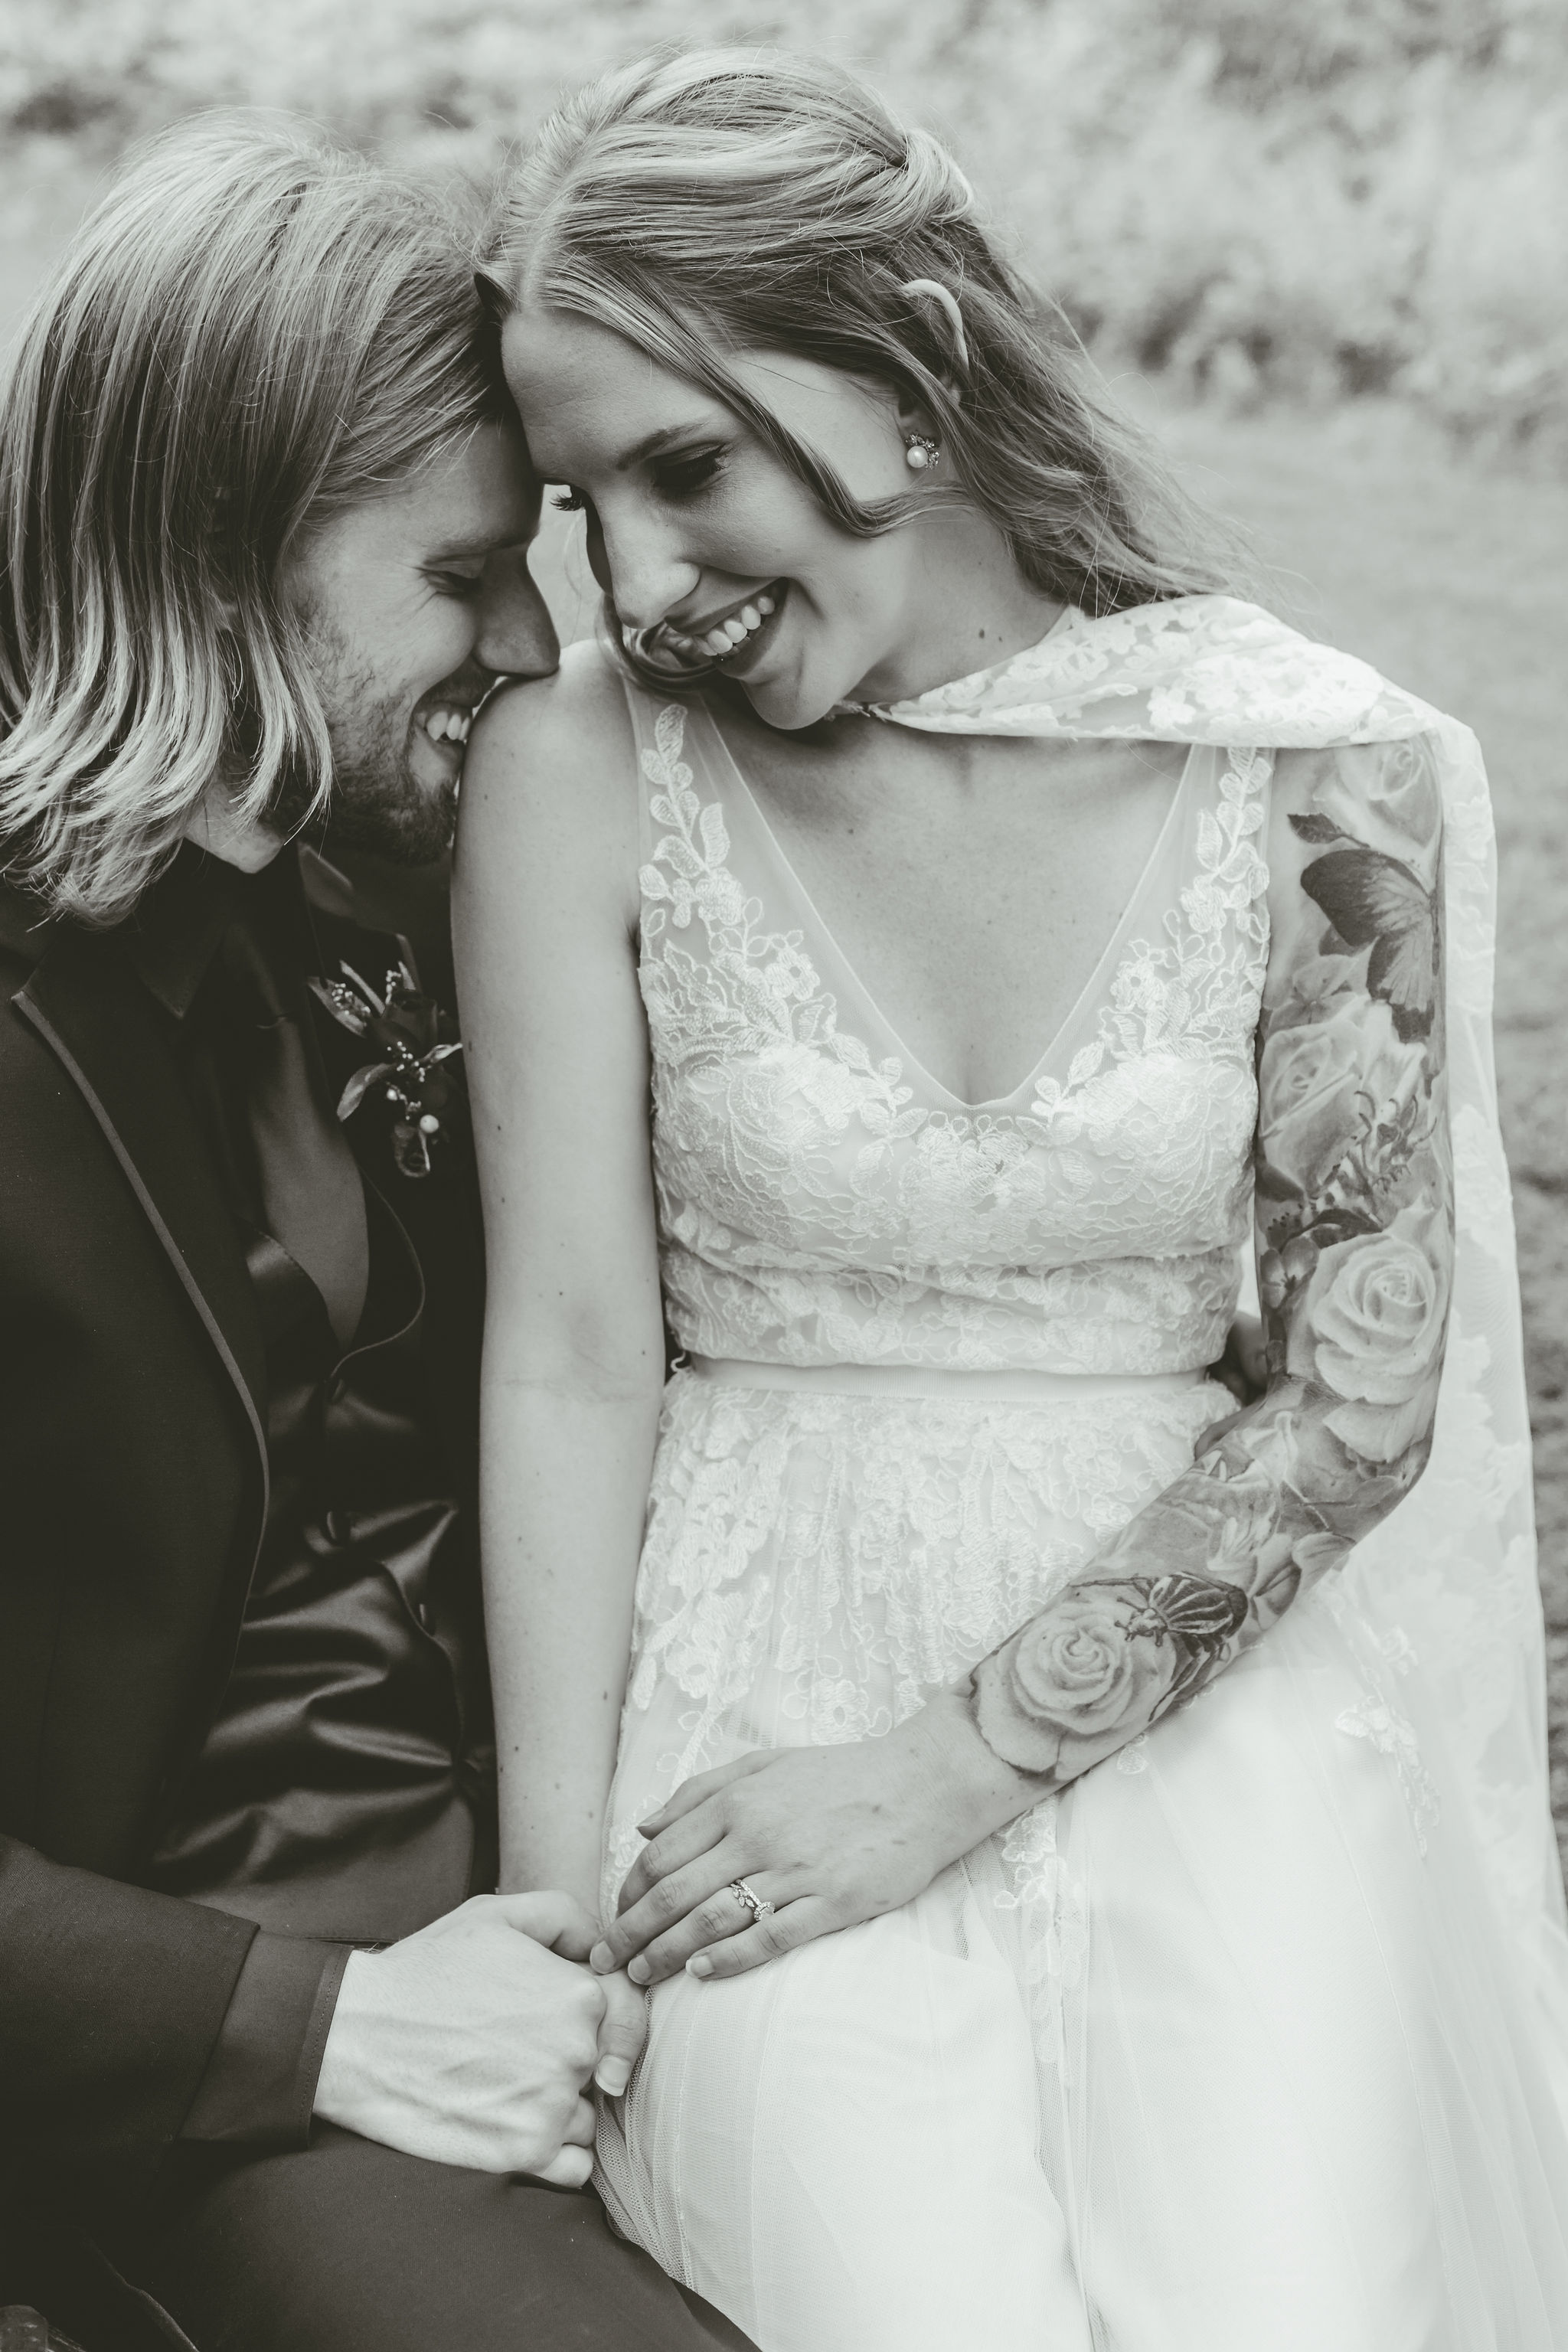 Lace wedding cape dress Bride with tattoos